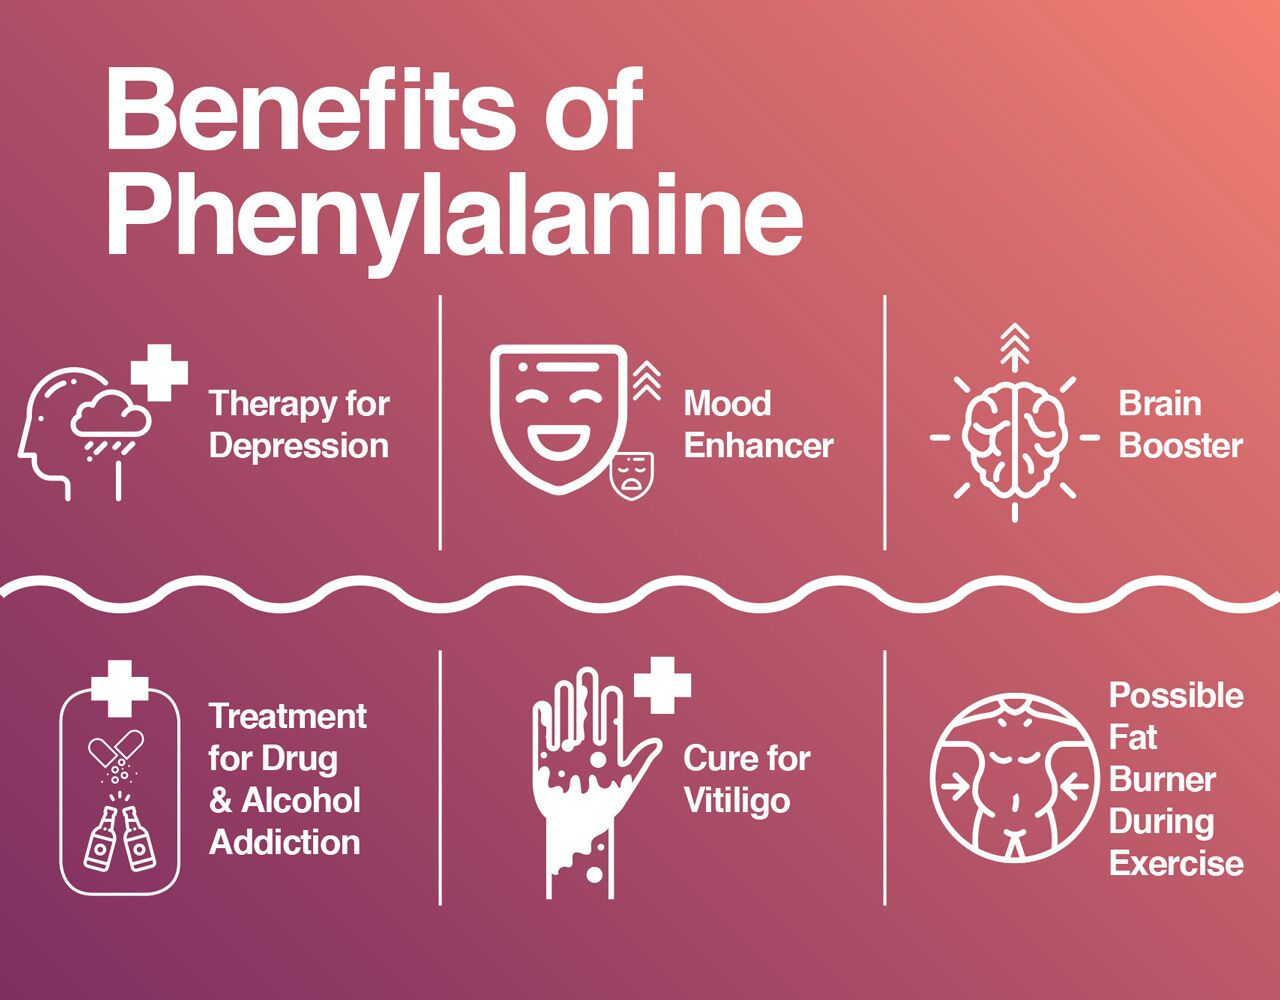 Here's what you need to know before you buy phenylalanine supplements.